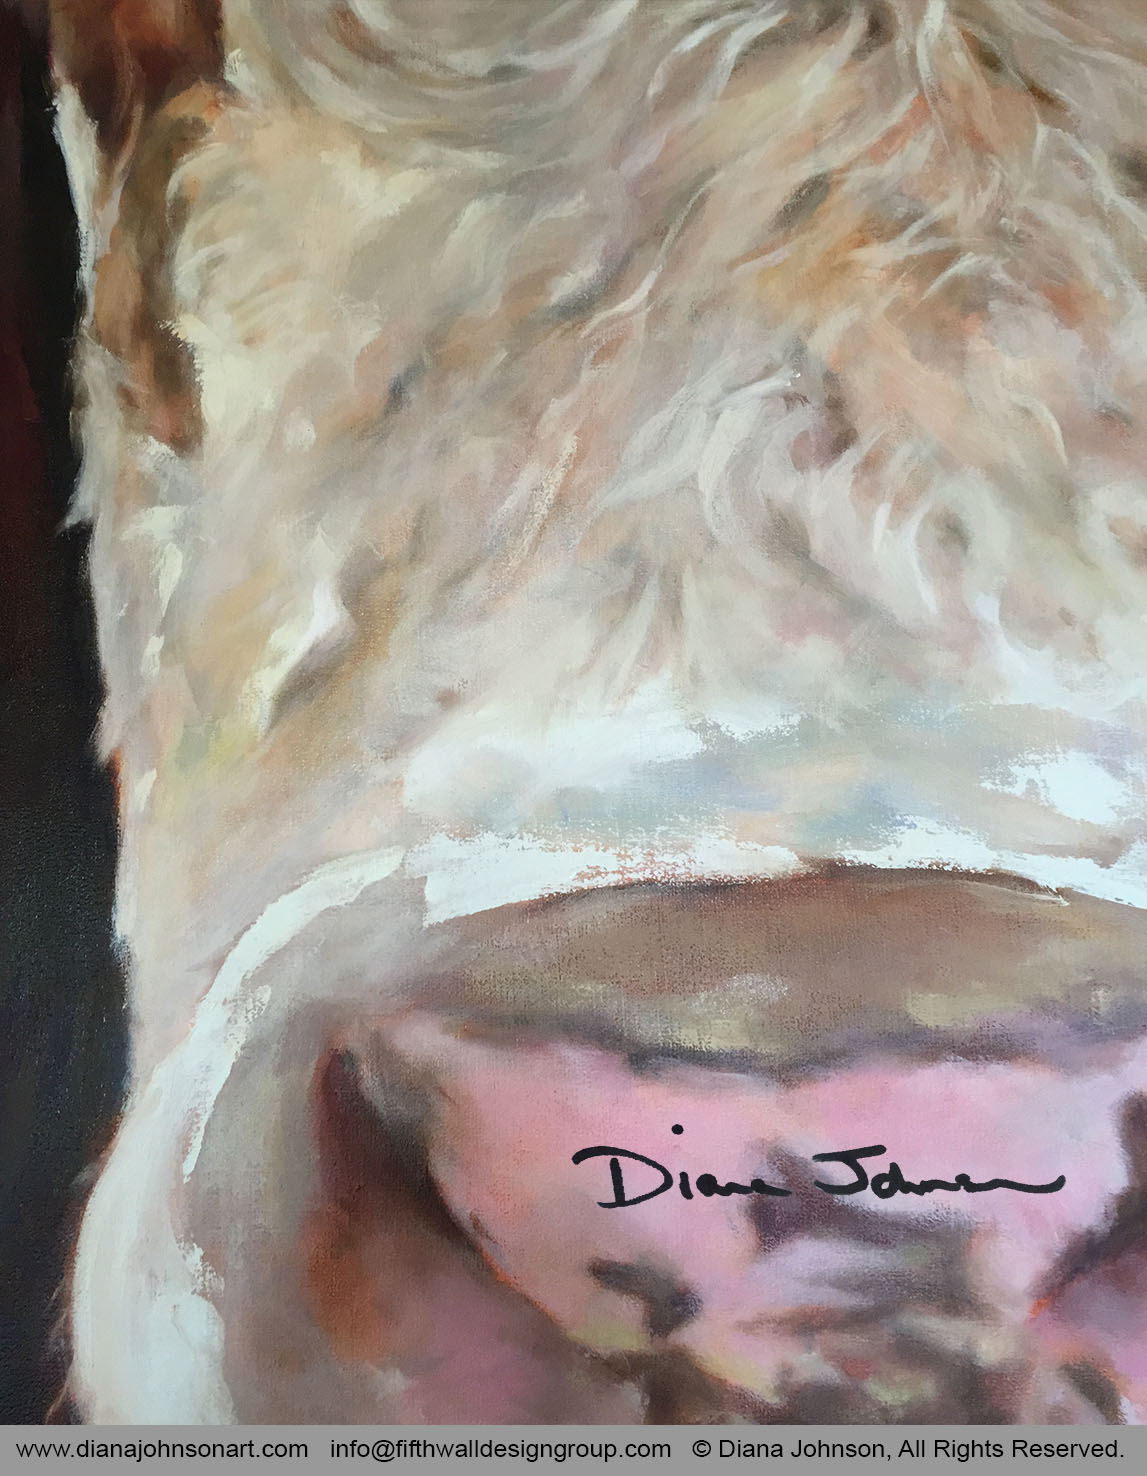 Amanda the Cow, detail. By Diana Johnson